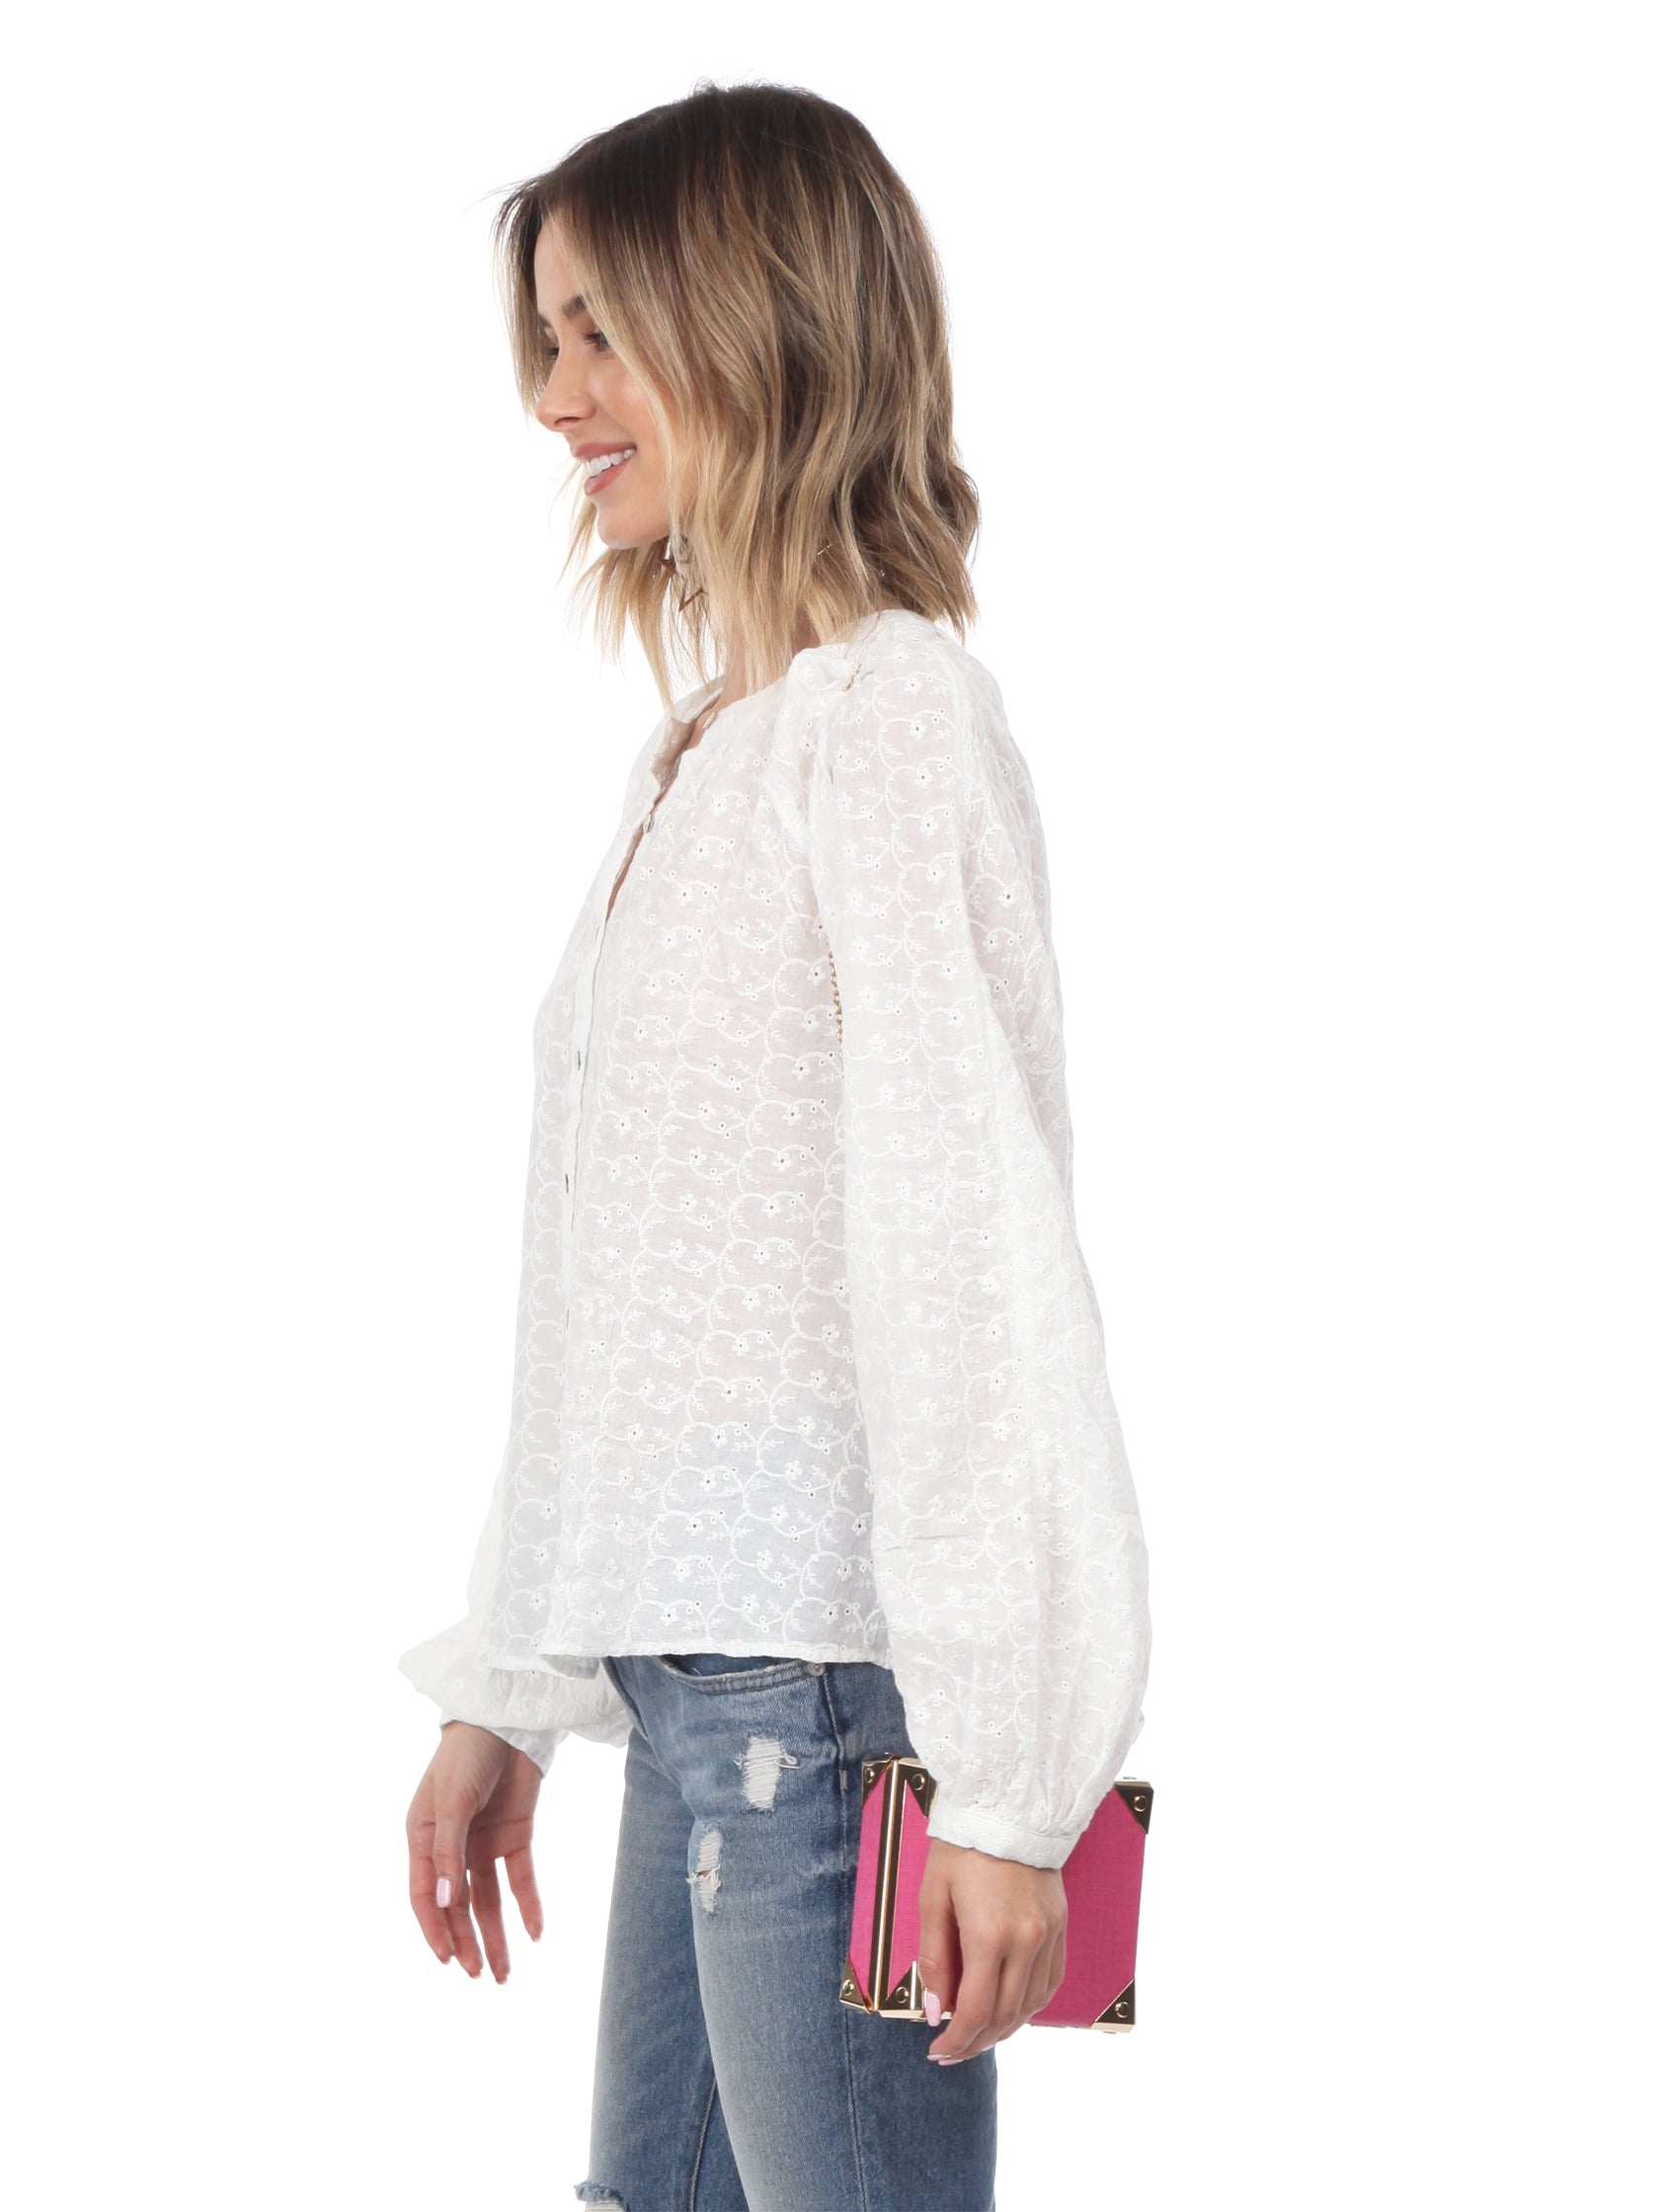 Women wearing a top rental from Free People called Down From The Clouds Peasant Top